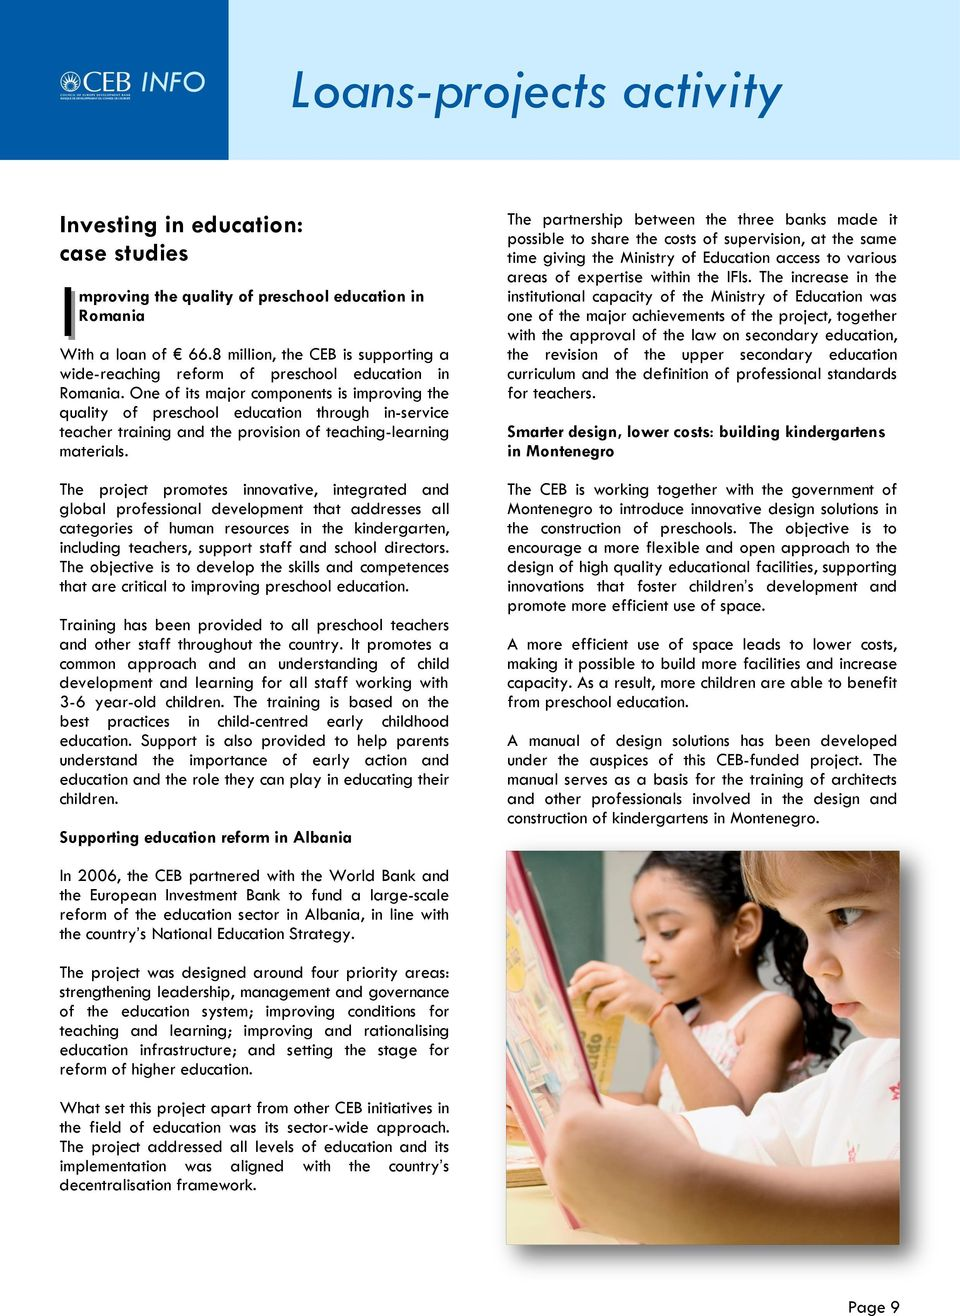 One of its major components is improving the quality of preschool education through in-service teacher training and the provision of teaching-learning materials.